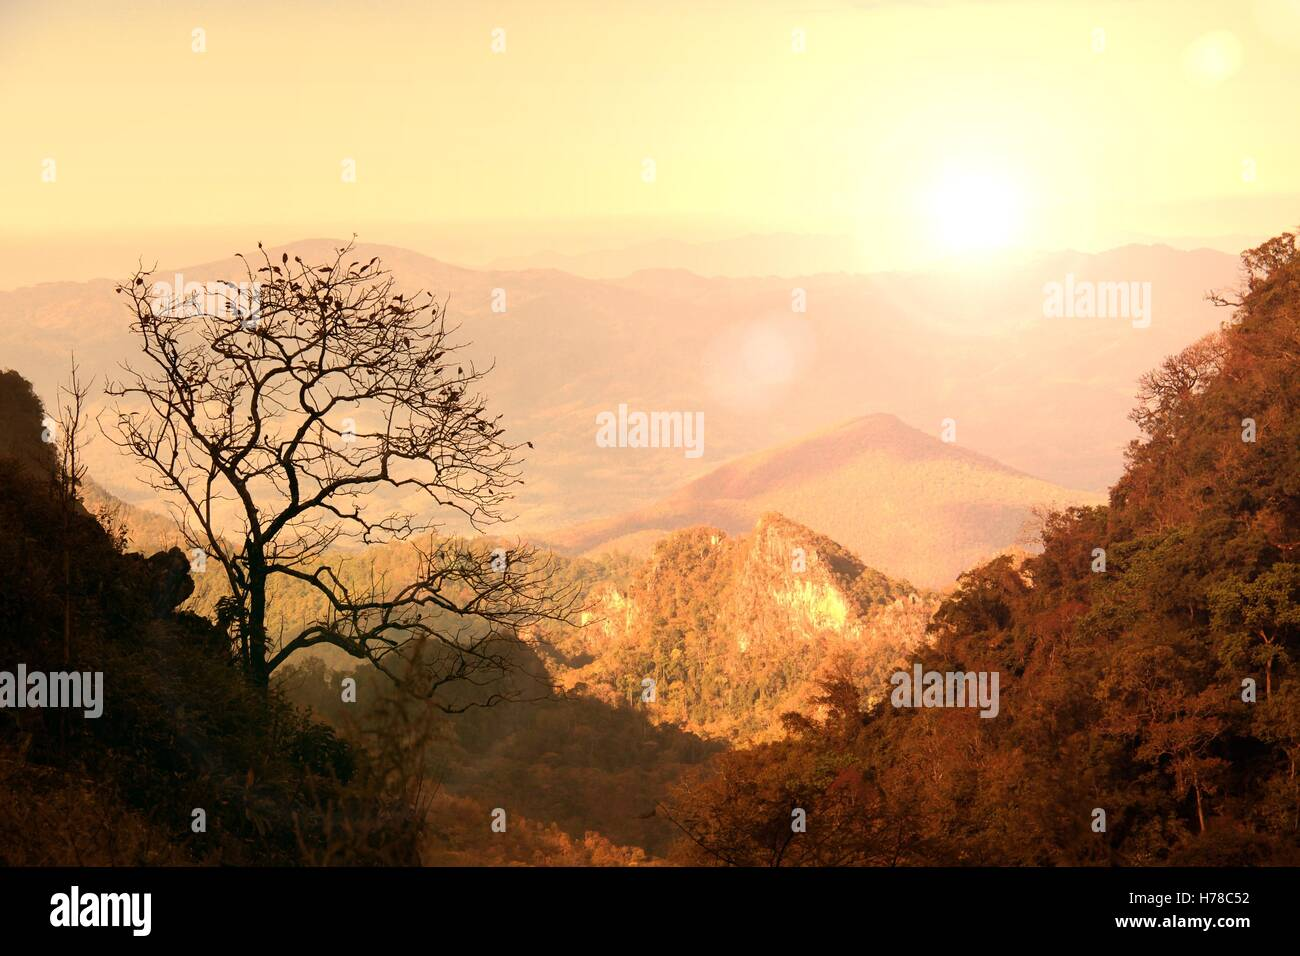 Leafless tree on limestone mountain during sunset with lens flare effect at Doi Luang Chiang Dao, Chiang mai, Thailand - Stock Image